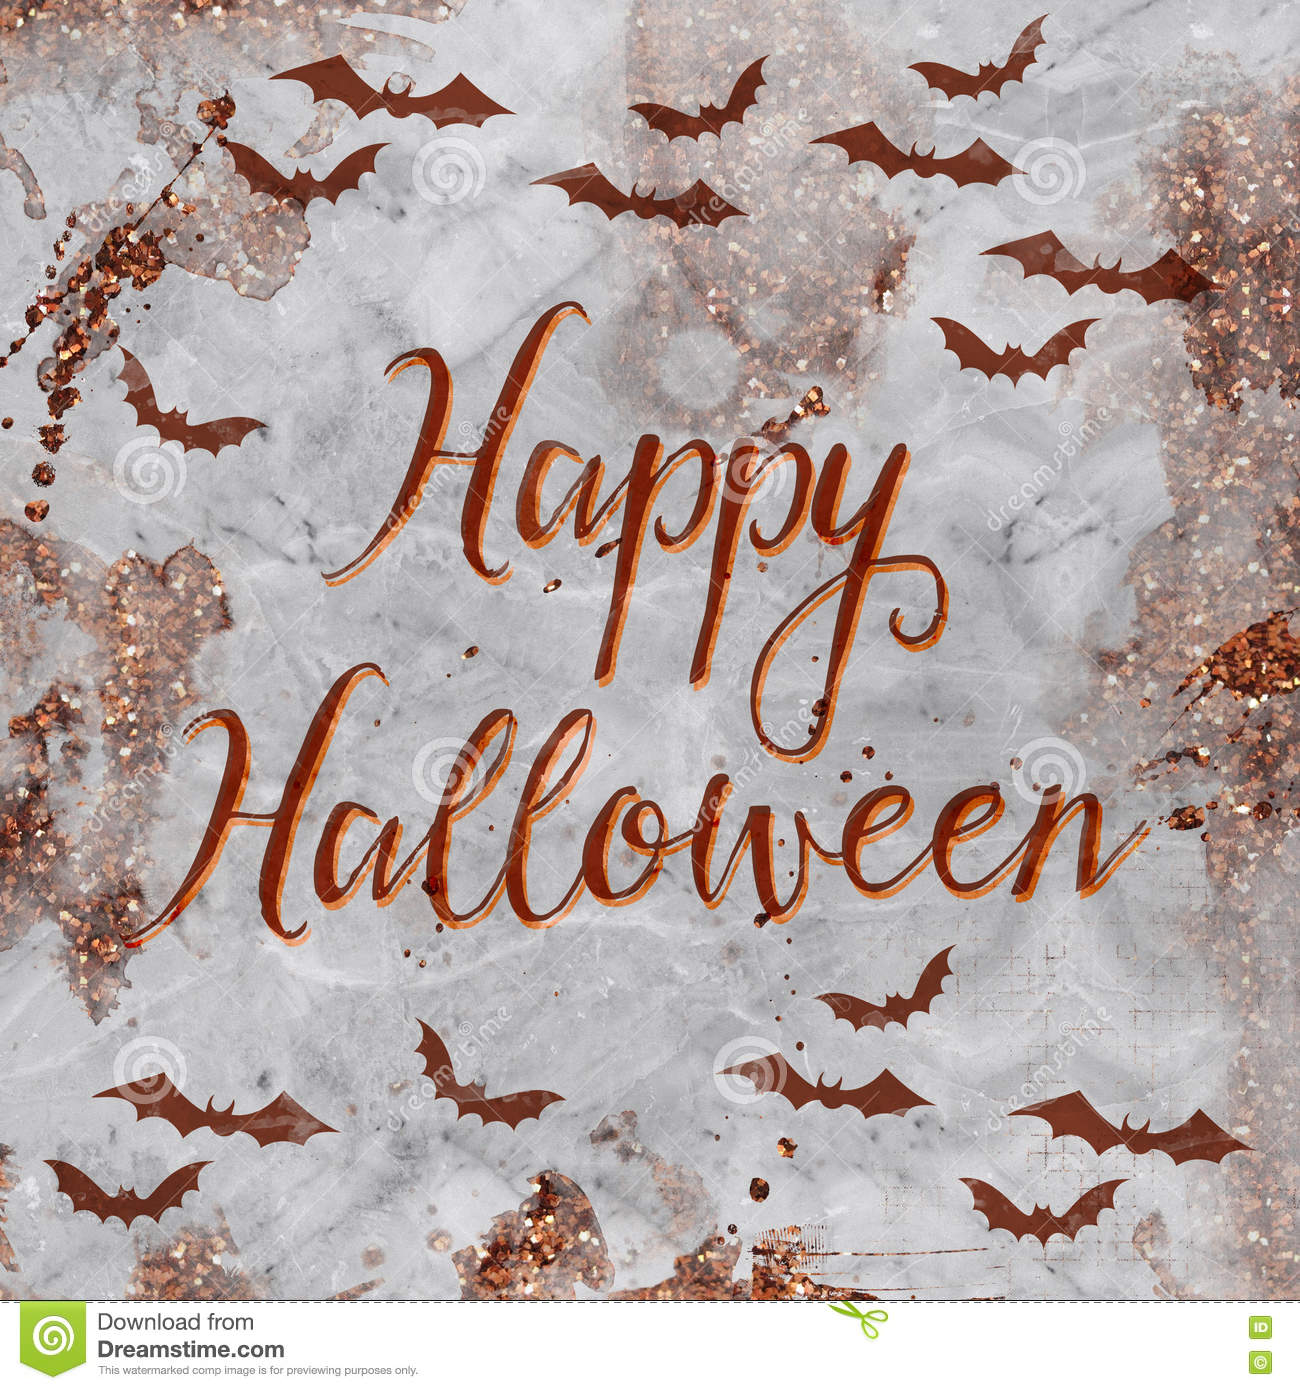 Popular Wallpaper Marble Copper - halloween-greetings-copper-marble-textured-wallpaper-vintage-background-texture-celebrating-october-st-reads-happy-has-77720823  You Should Have_636854.jpg